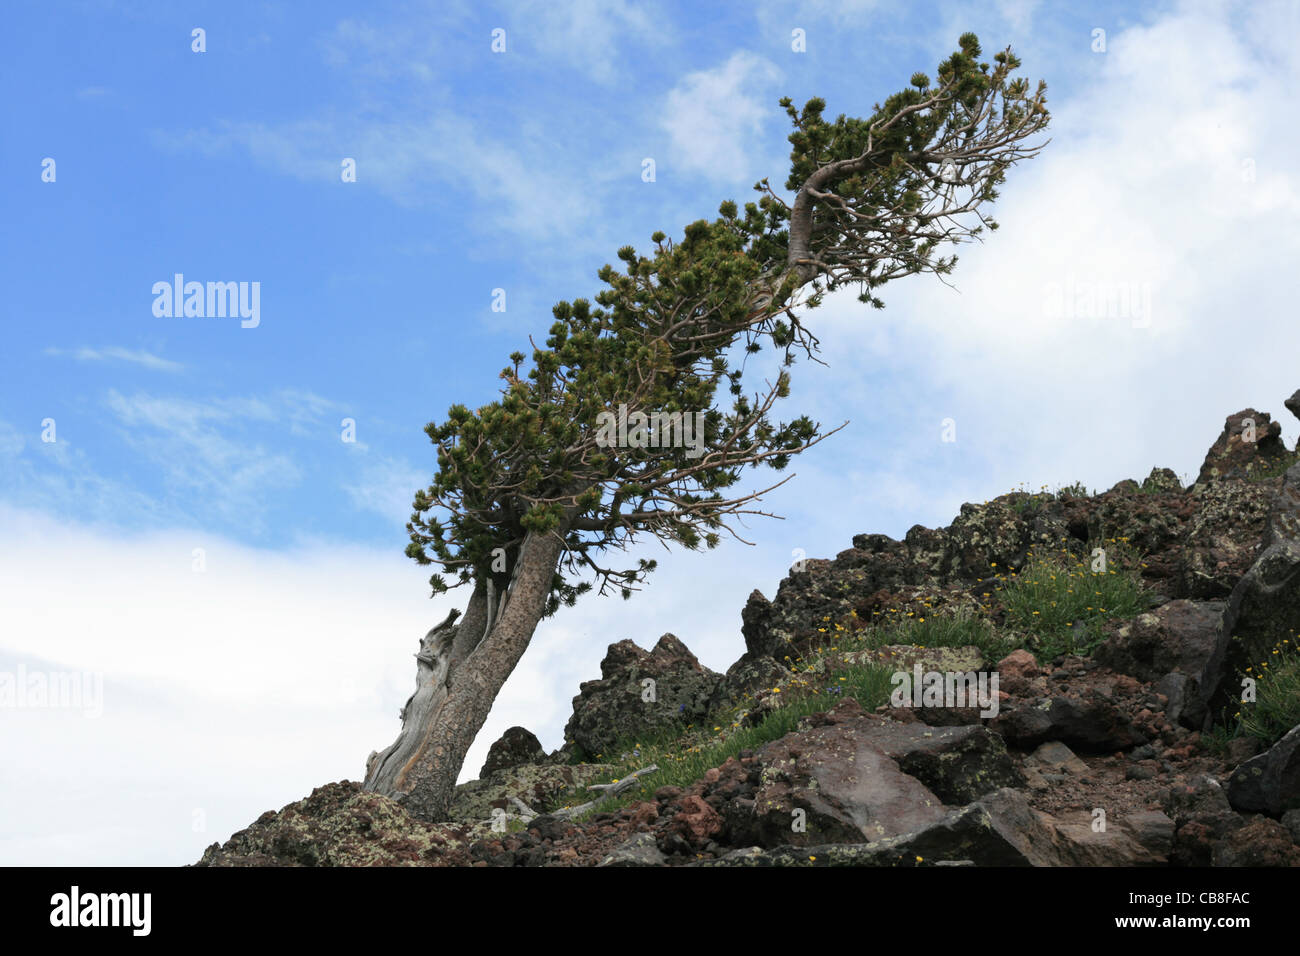 mountain pine tree above 11,000 feet on the San Francisco Peaks bent over by the wind and harsh weather - Stock Image